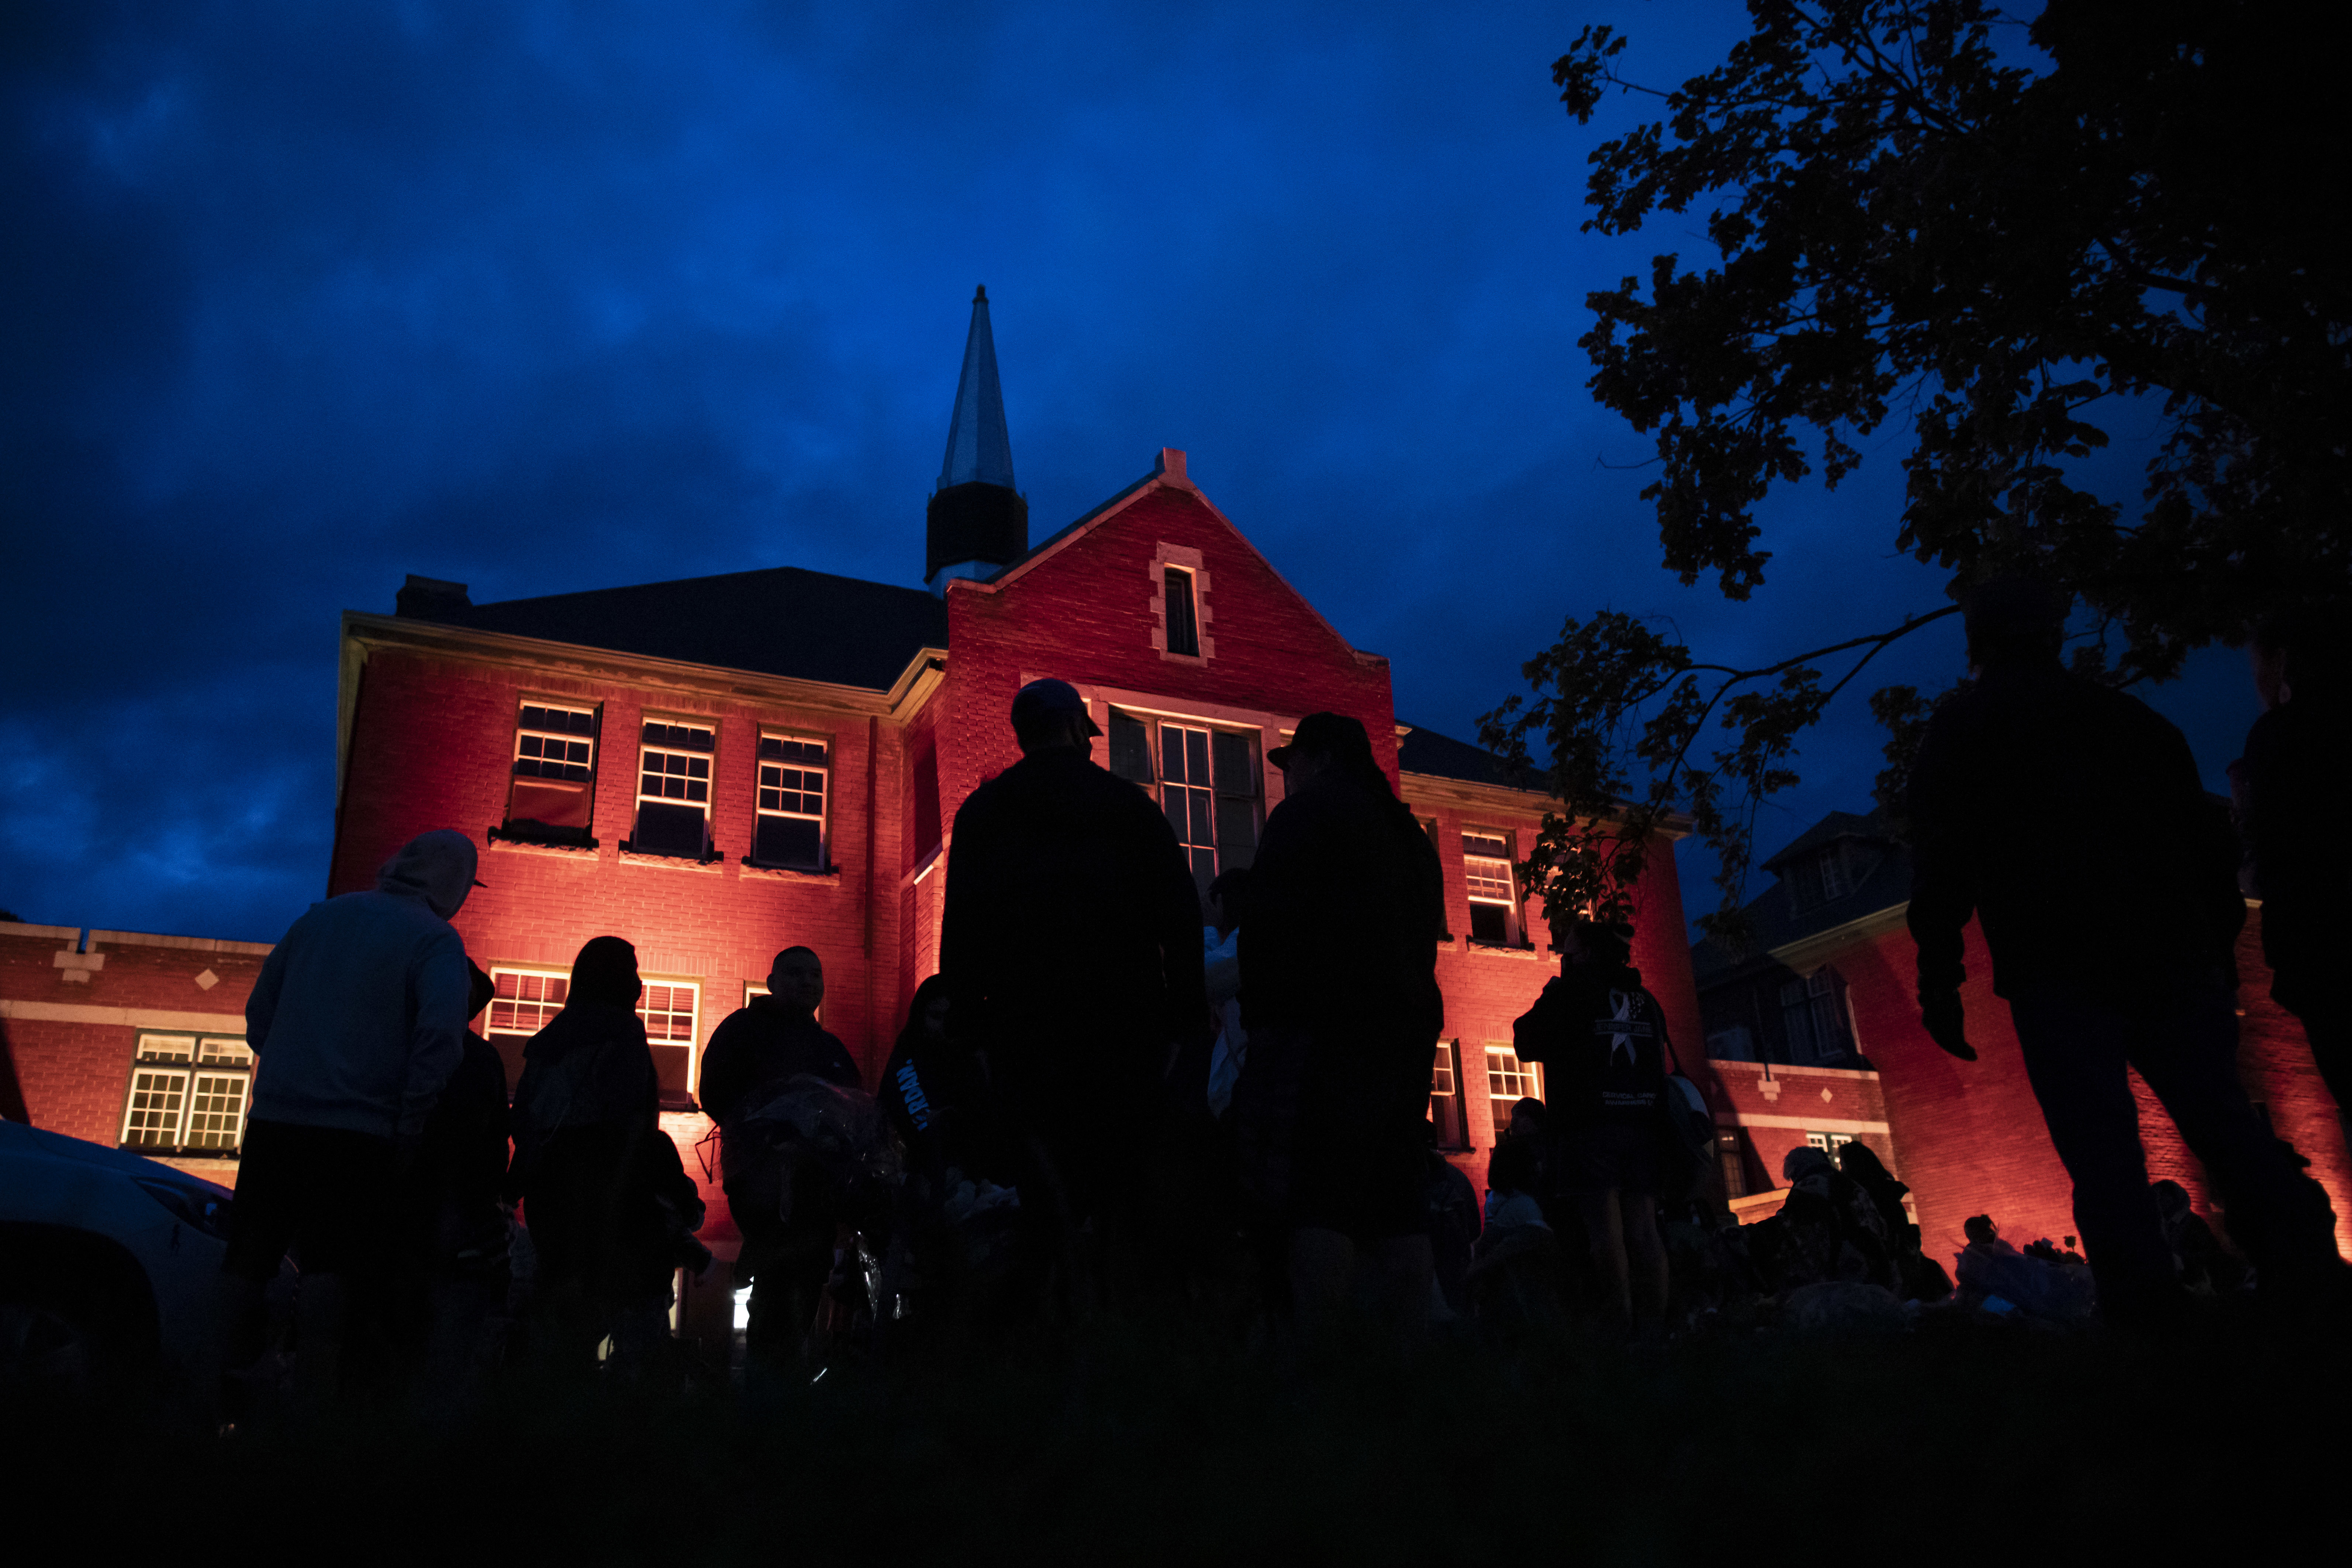 The former school is illuminated with orange lights in the evening as people gather outside the memorial.